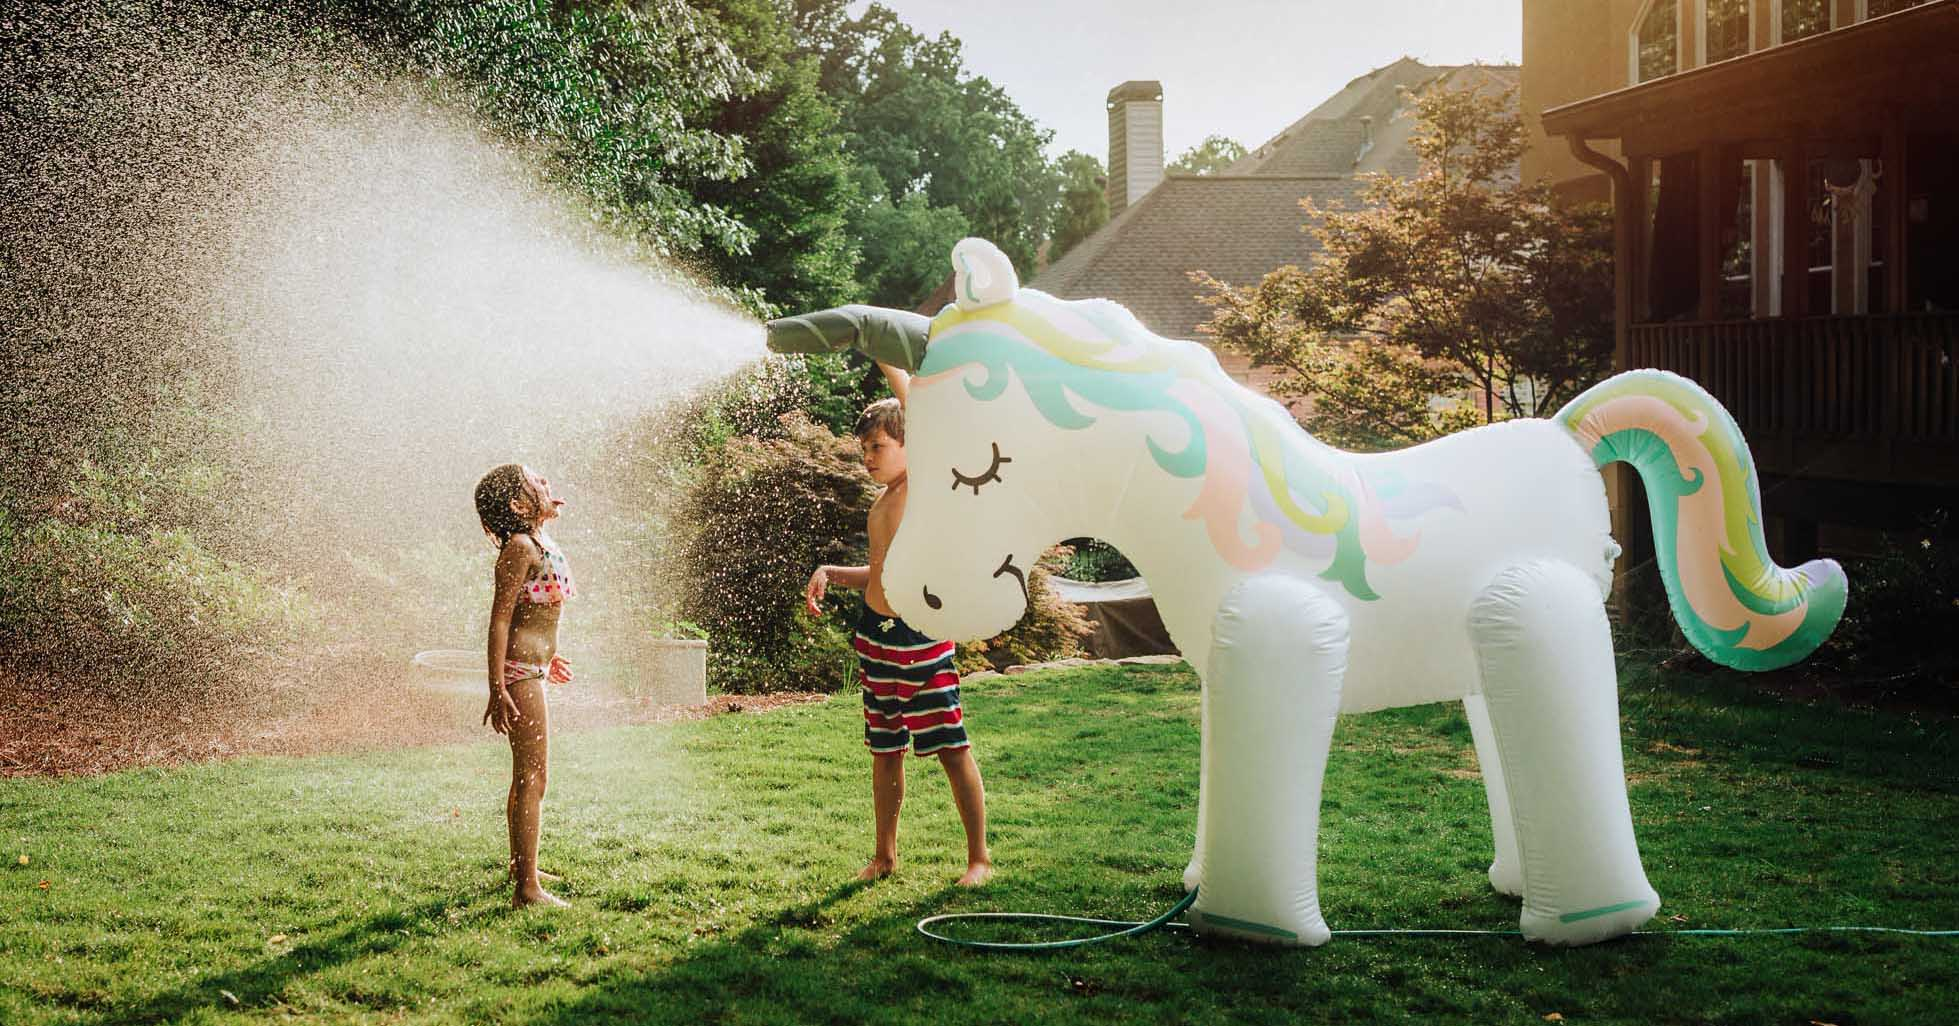 100 Outrageously Fun Summer Photo Session Ideas To Try